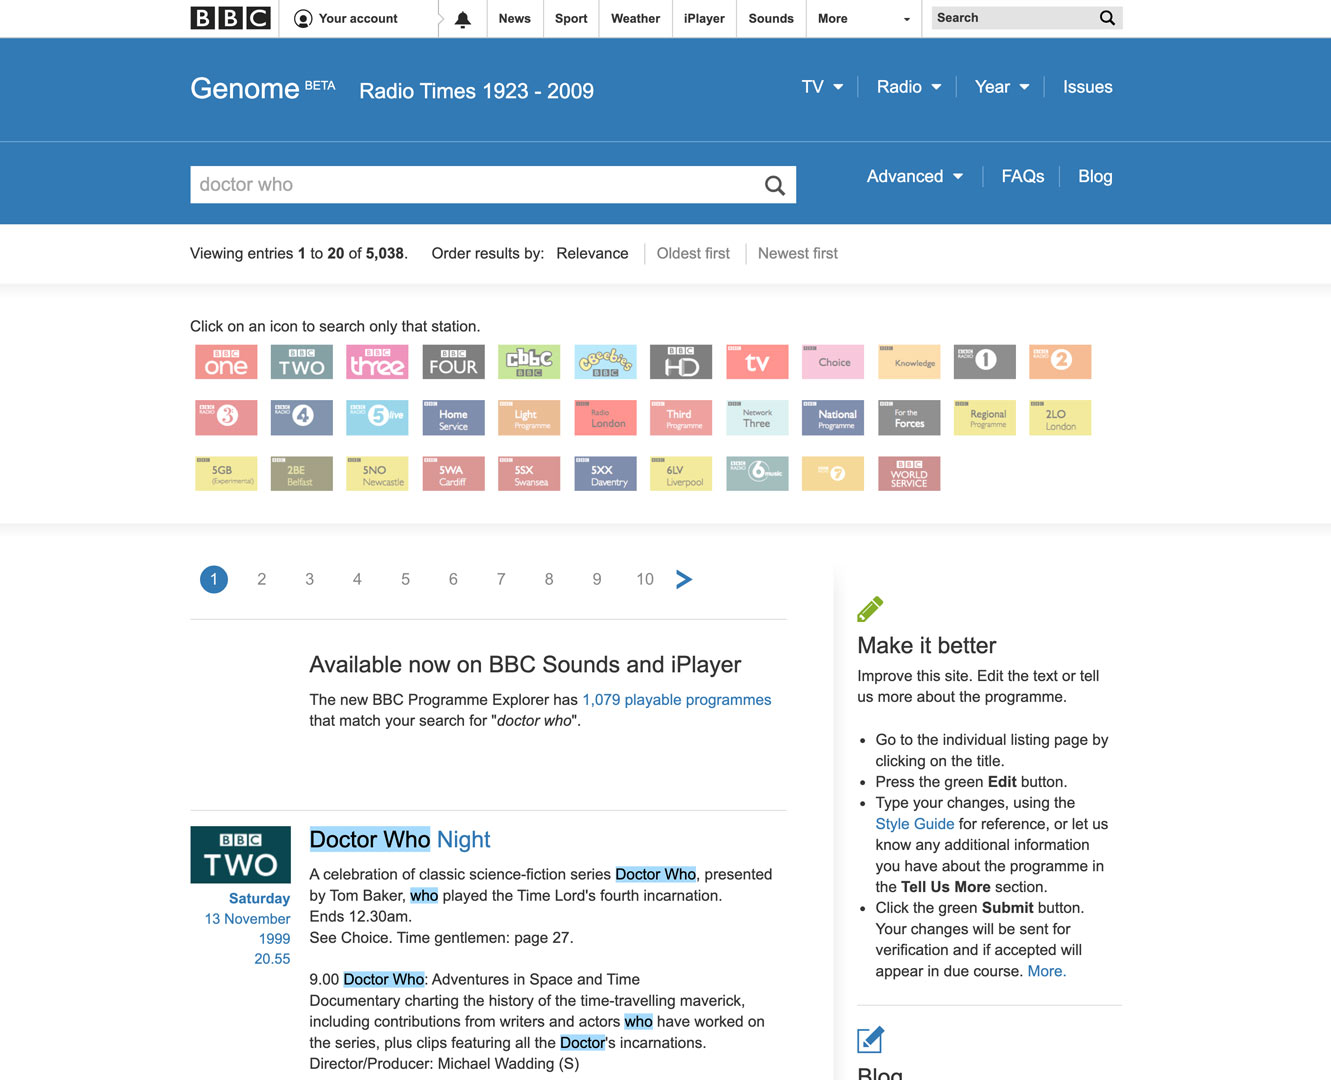 BBC Genome search results screenshot